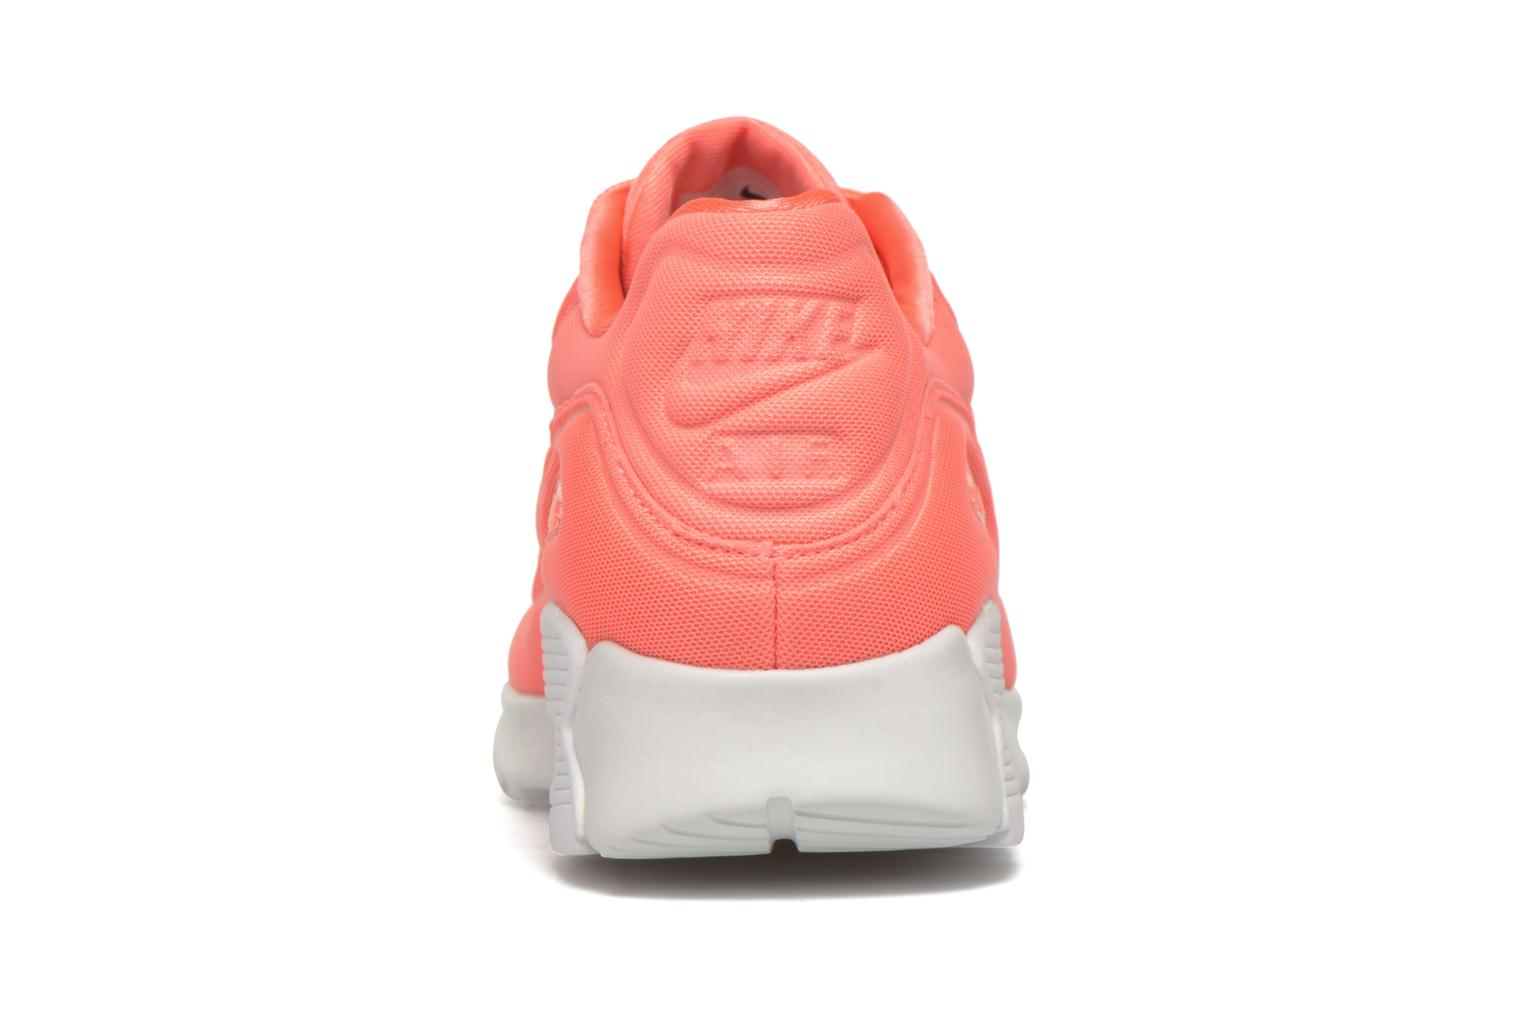 W Air Max 90 Ultra Plush Atomic Pink/Atmc Pink-Smmt Wht